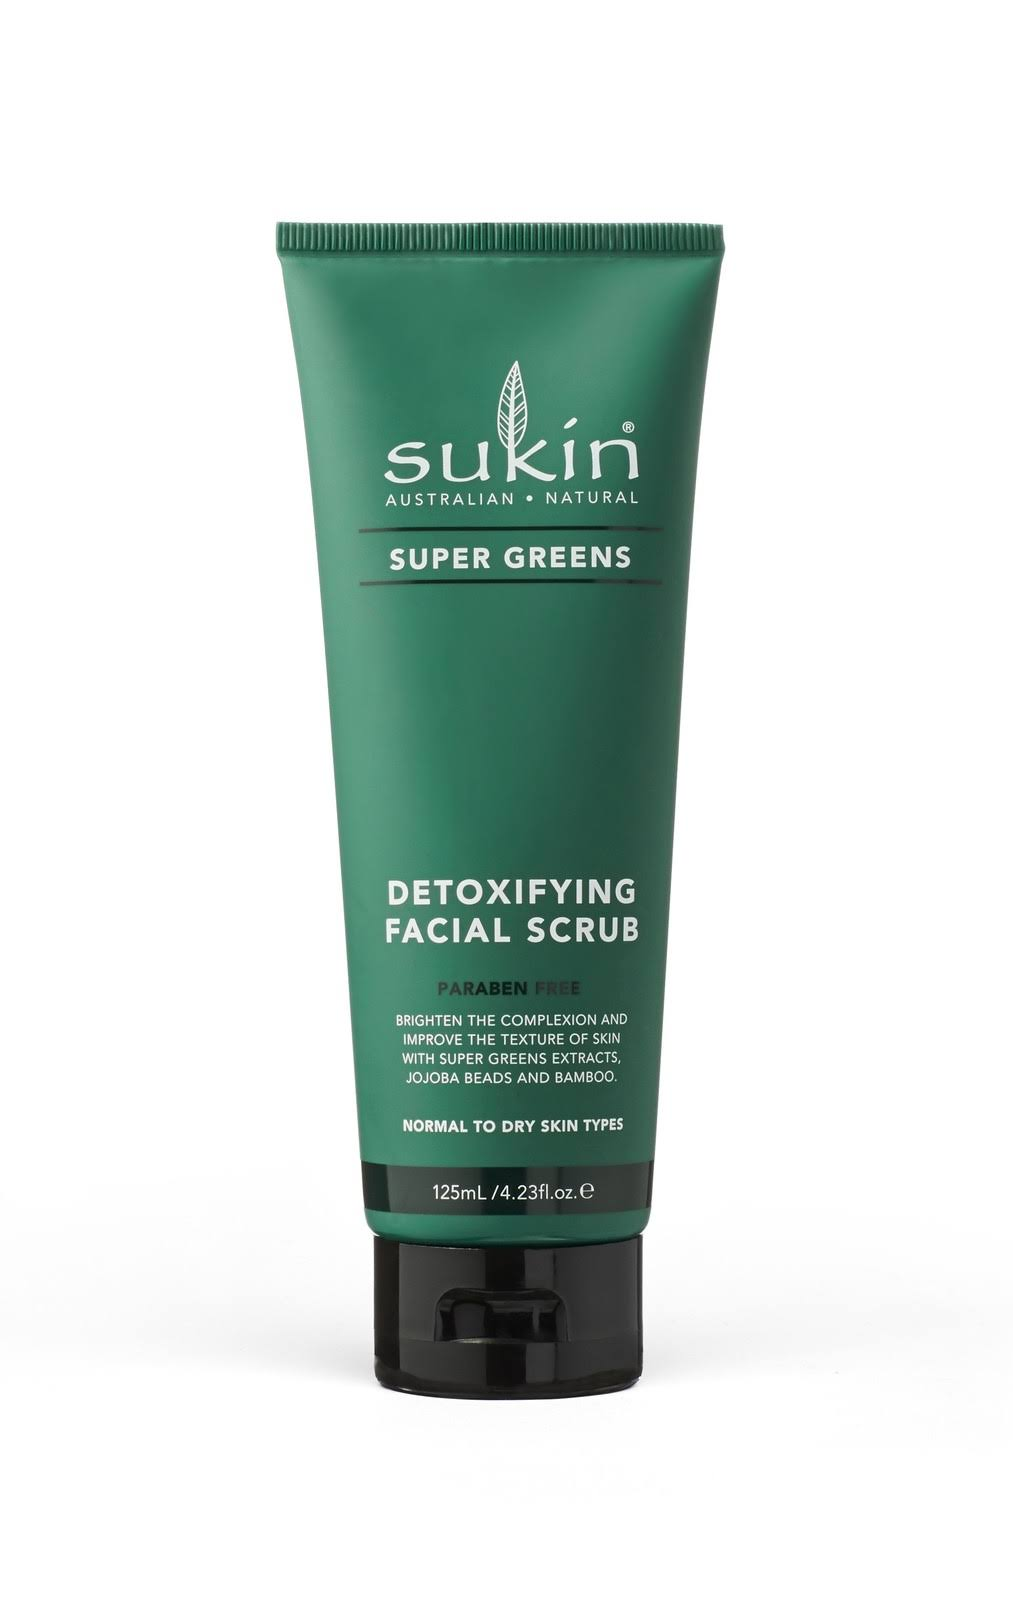 Sukin Super Greens Detoxifying Facial Scrub - 125ml